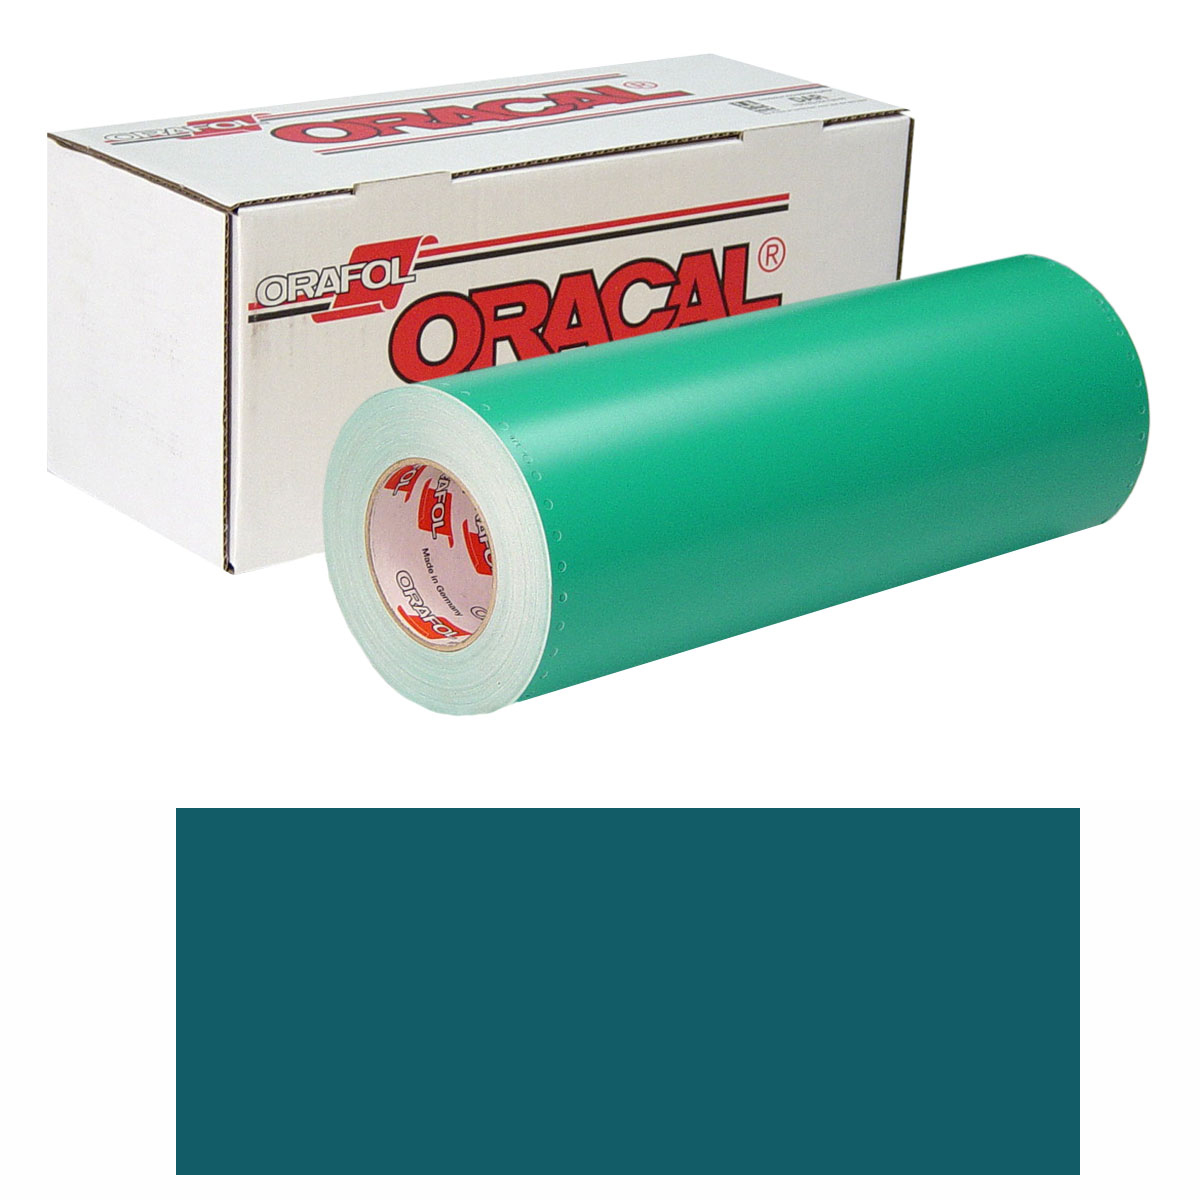 ORACAL 8500 Unp 48In X 50Yd 541 Dark Turquois